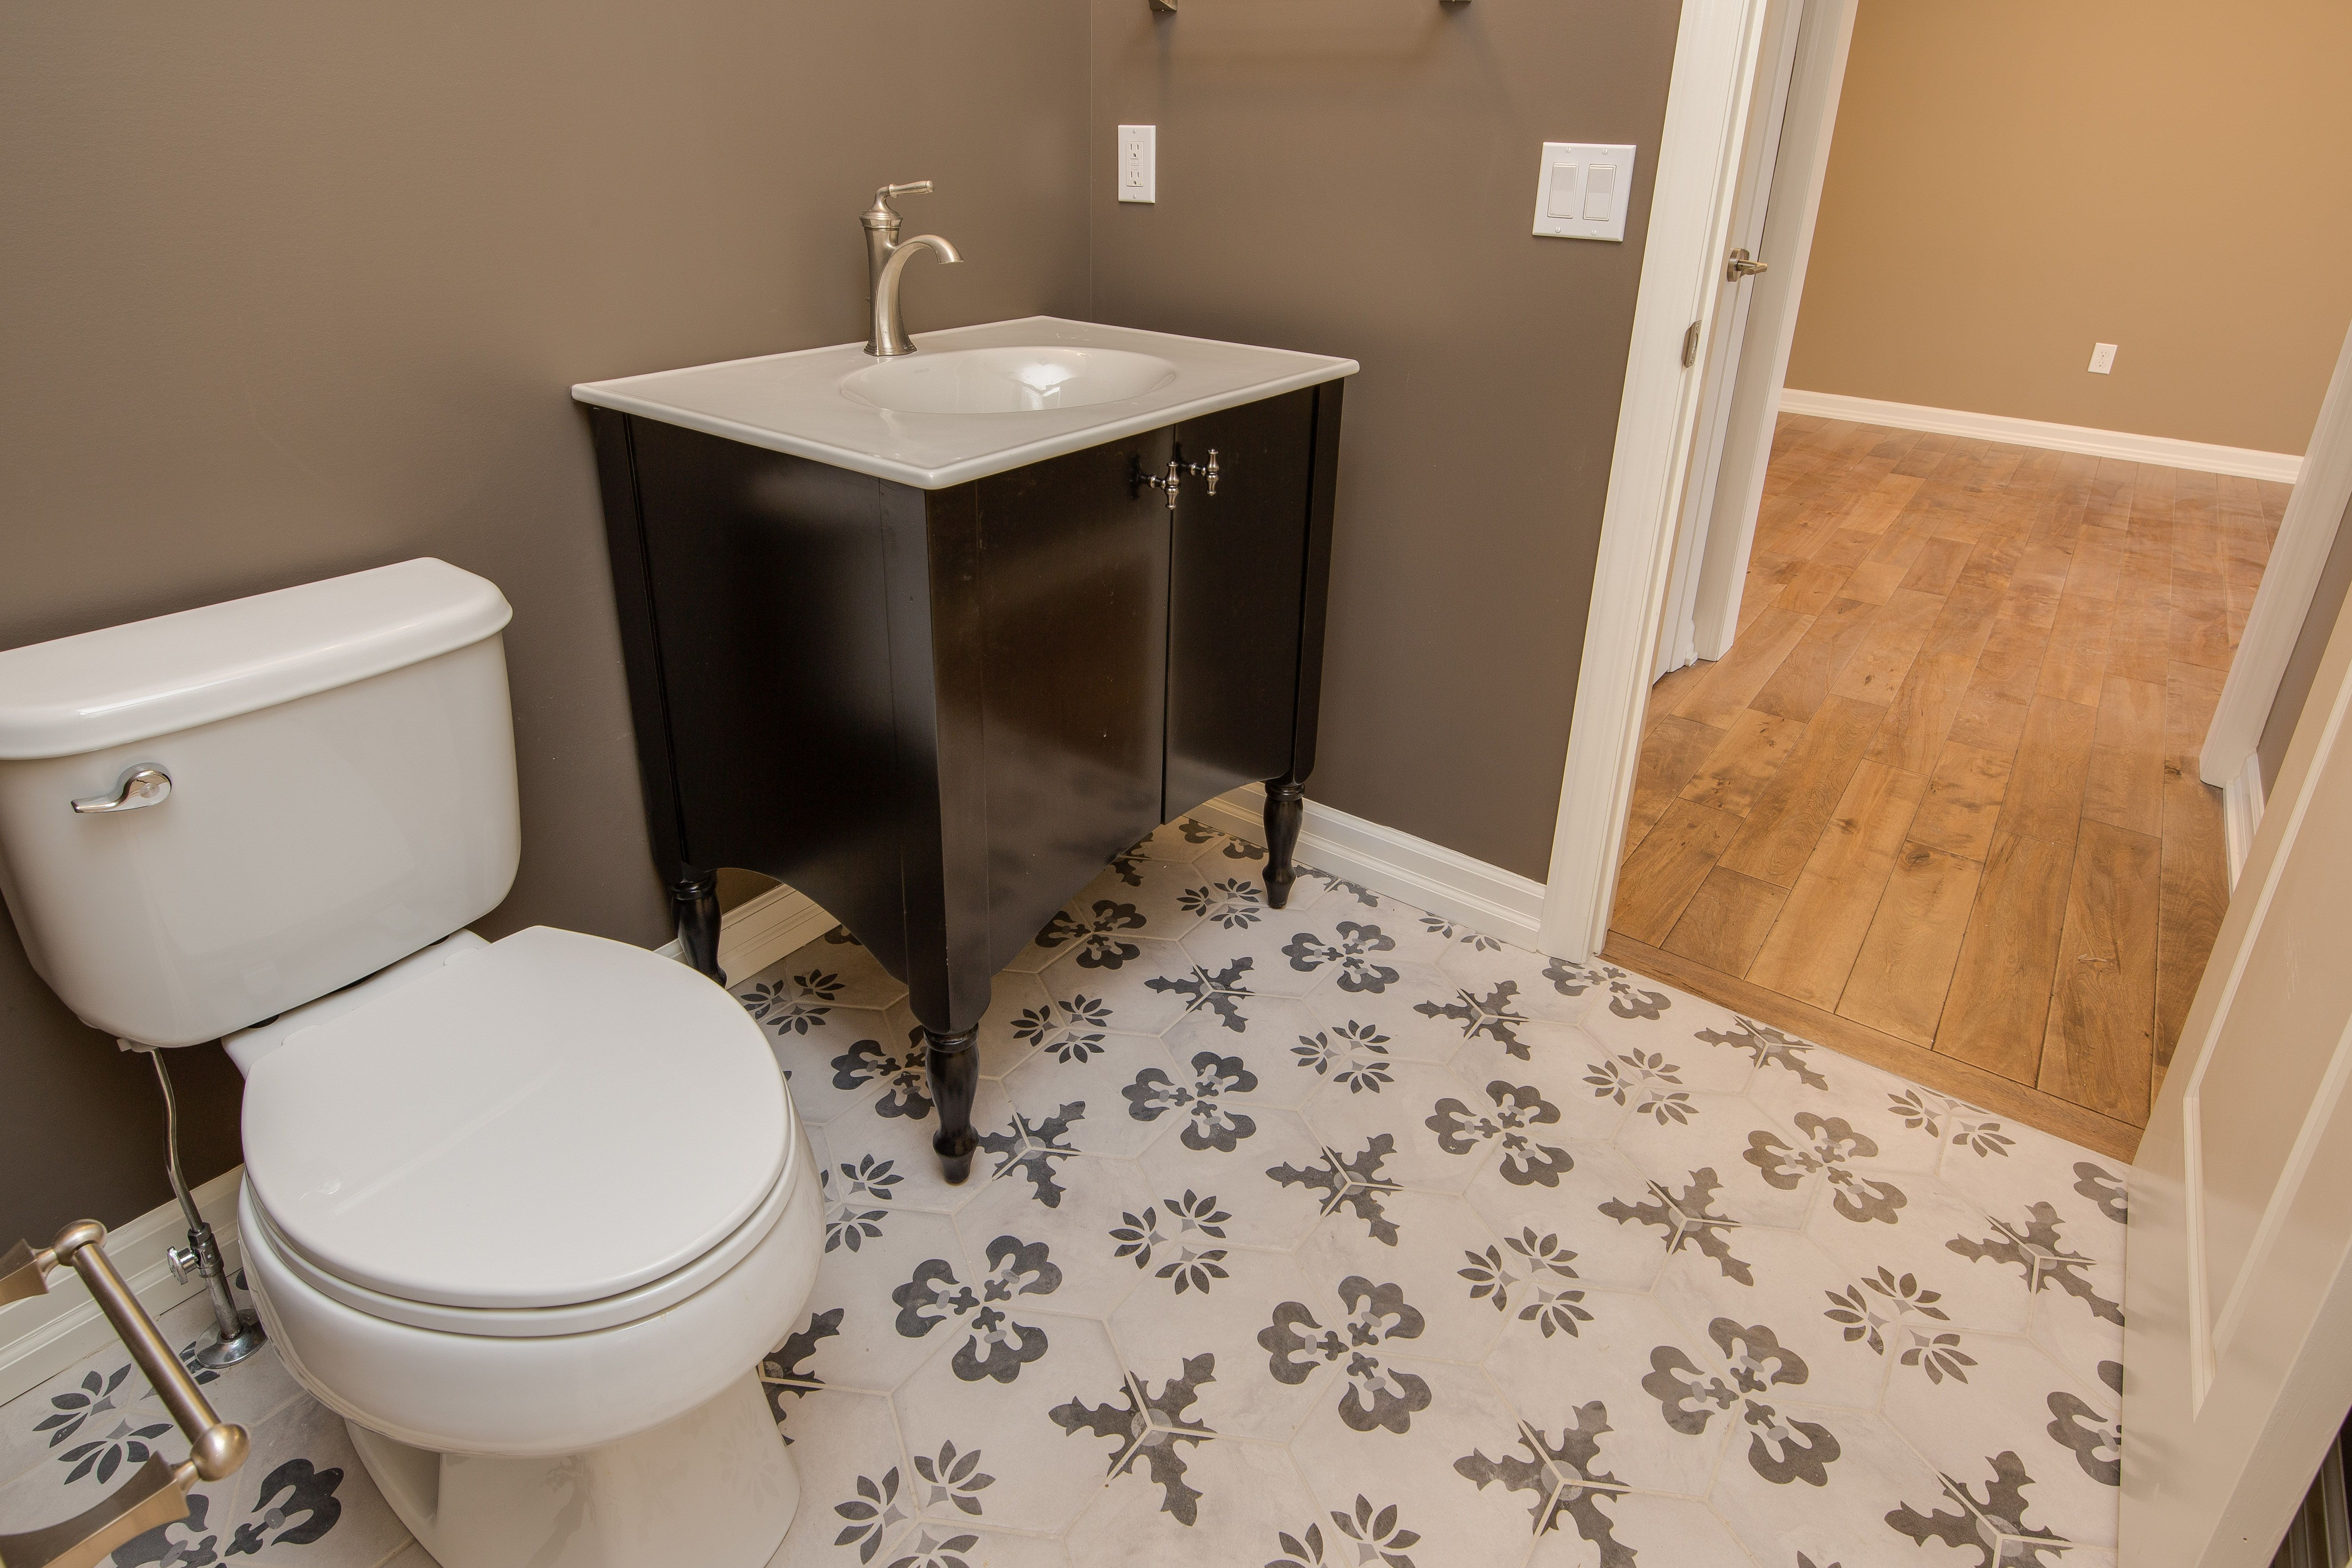 Powder Bath Ceramic Hexagon Deco Tile Floor Stained Vanity Cabinets With Marbelite Counter Top